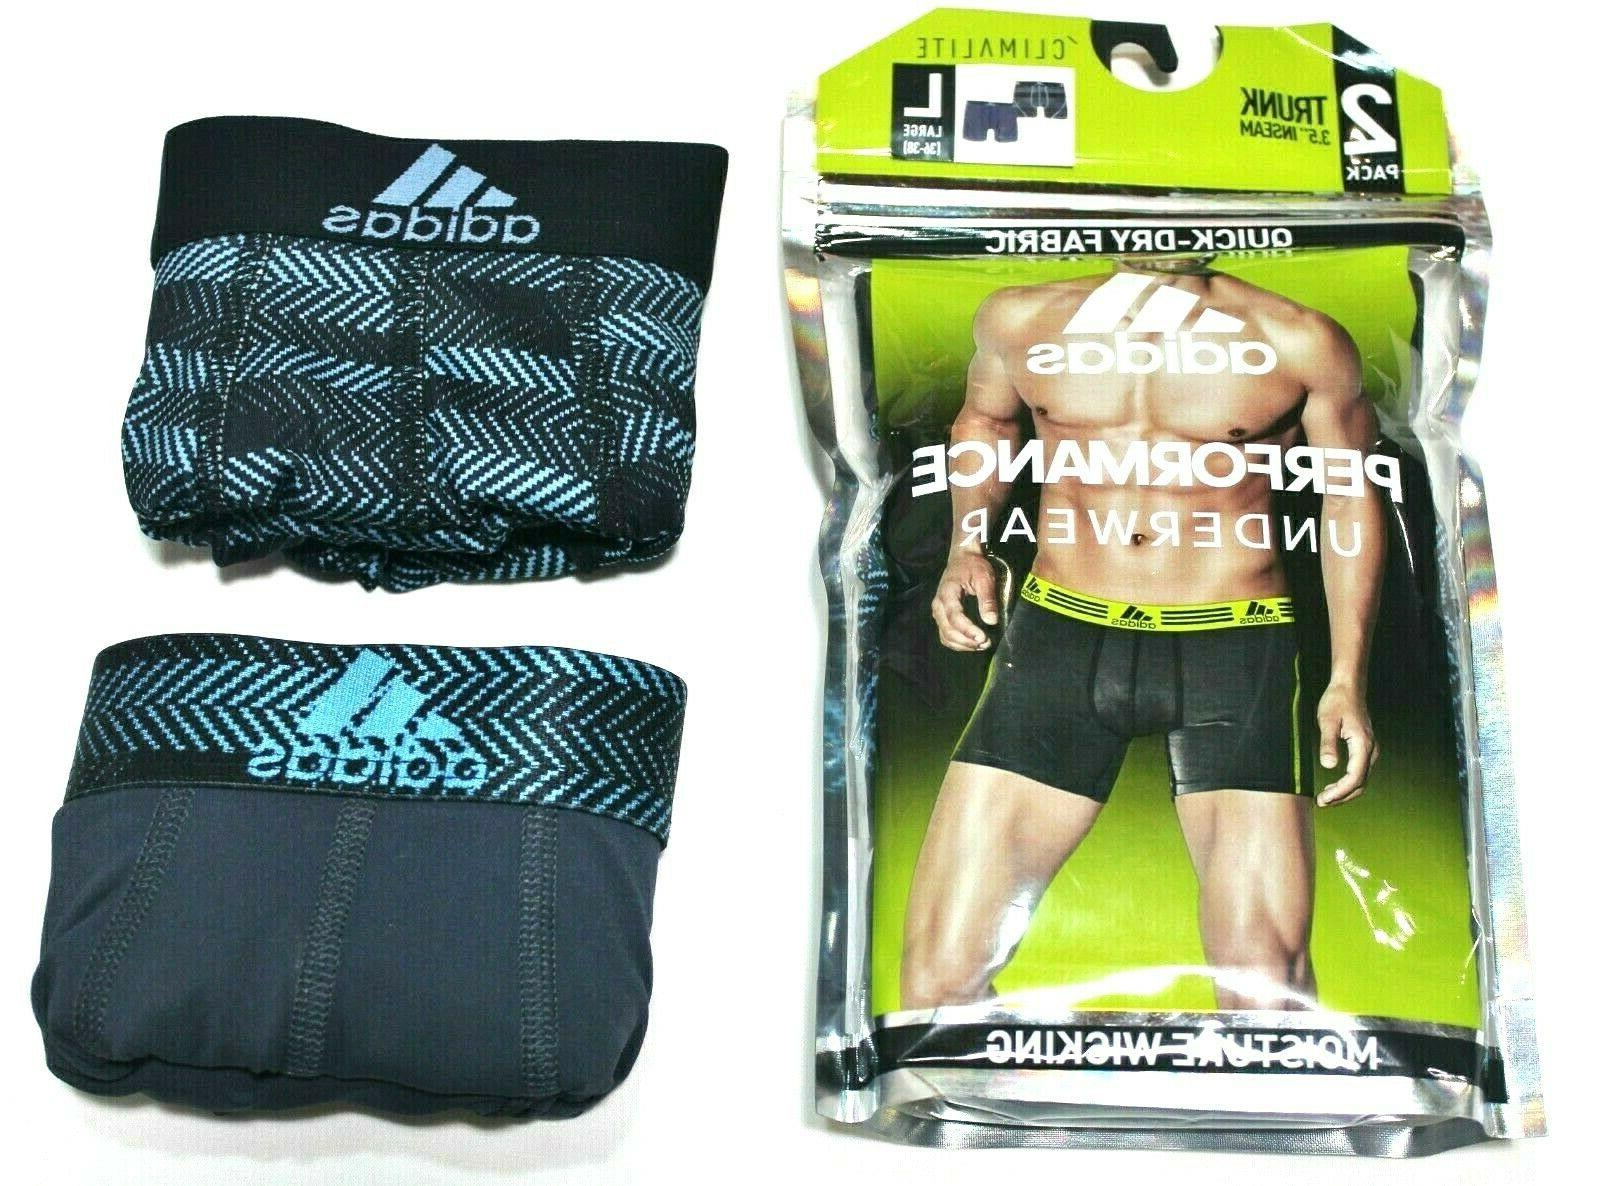 climalite performance trunk brief 2 pack blue